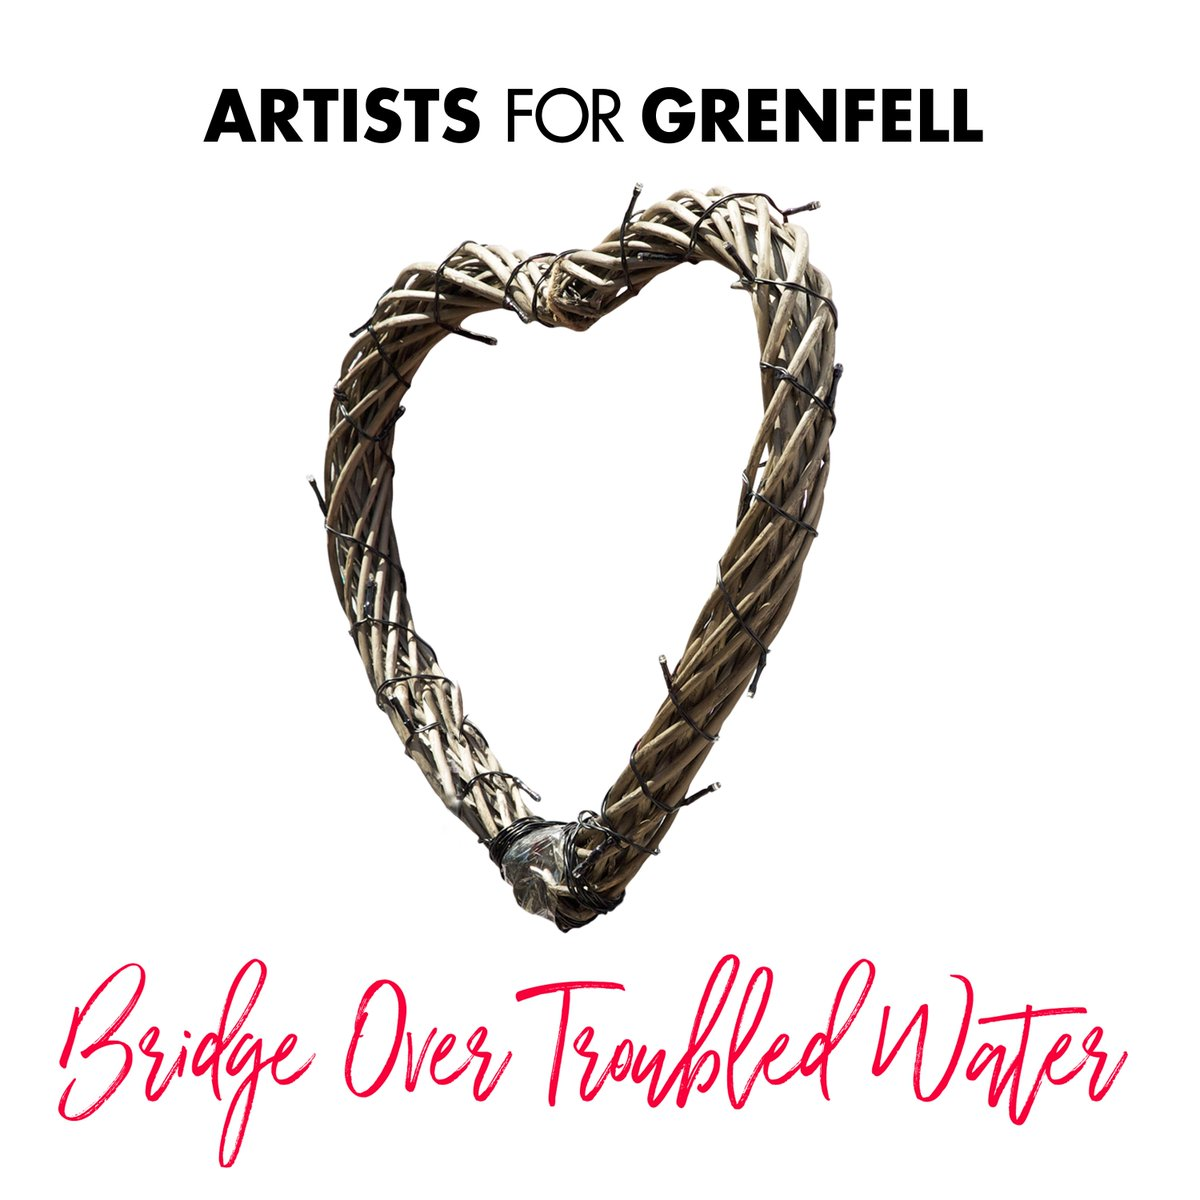 Please donate what you can to help support those affected by the Grenfell Tower tragedy: https://t.co/AZ3cH8ipIf https://t.co/viddNVoQAl